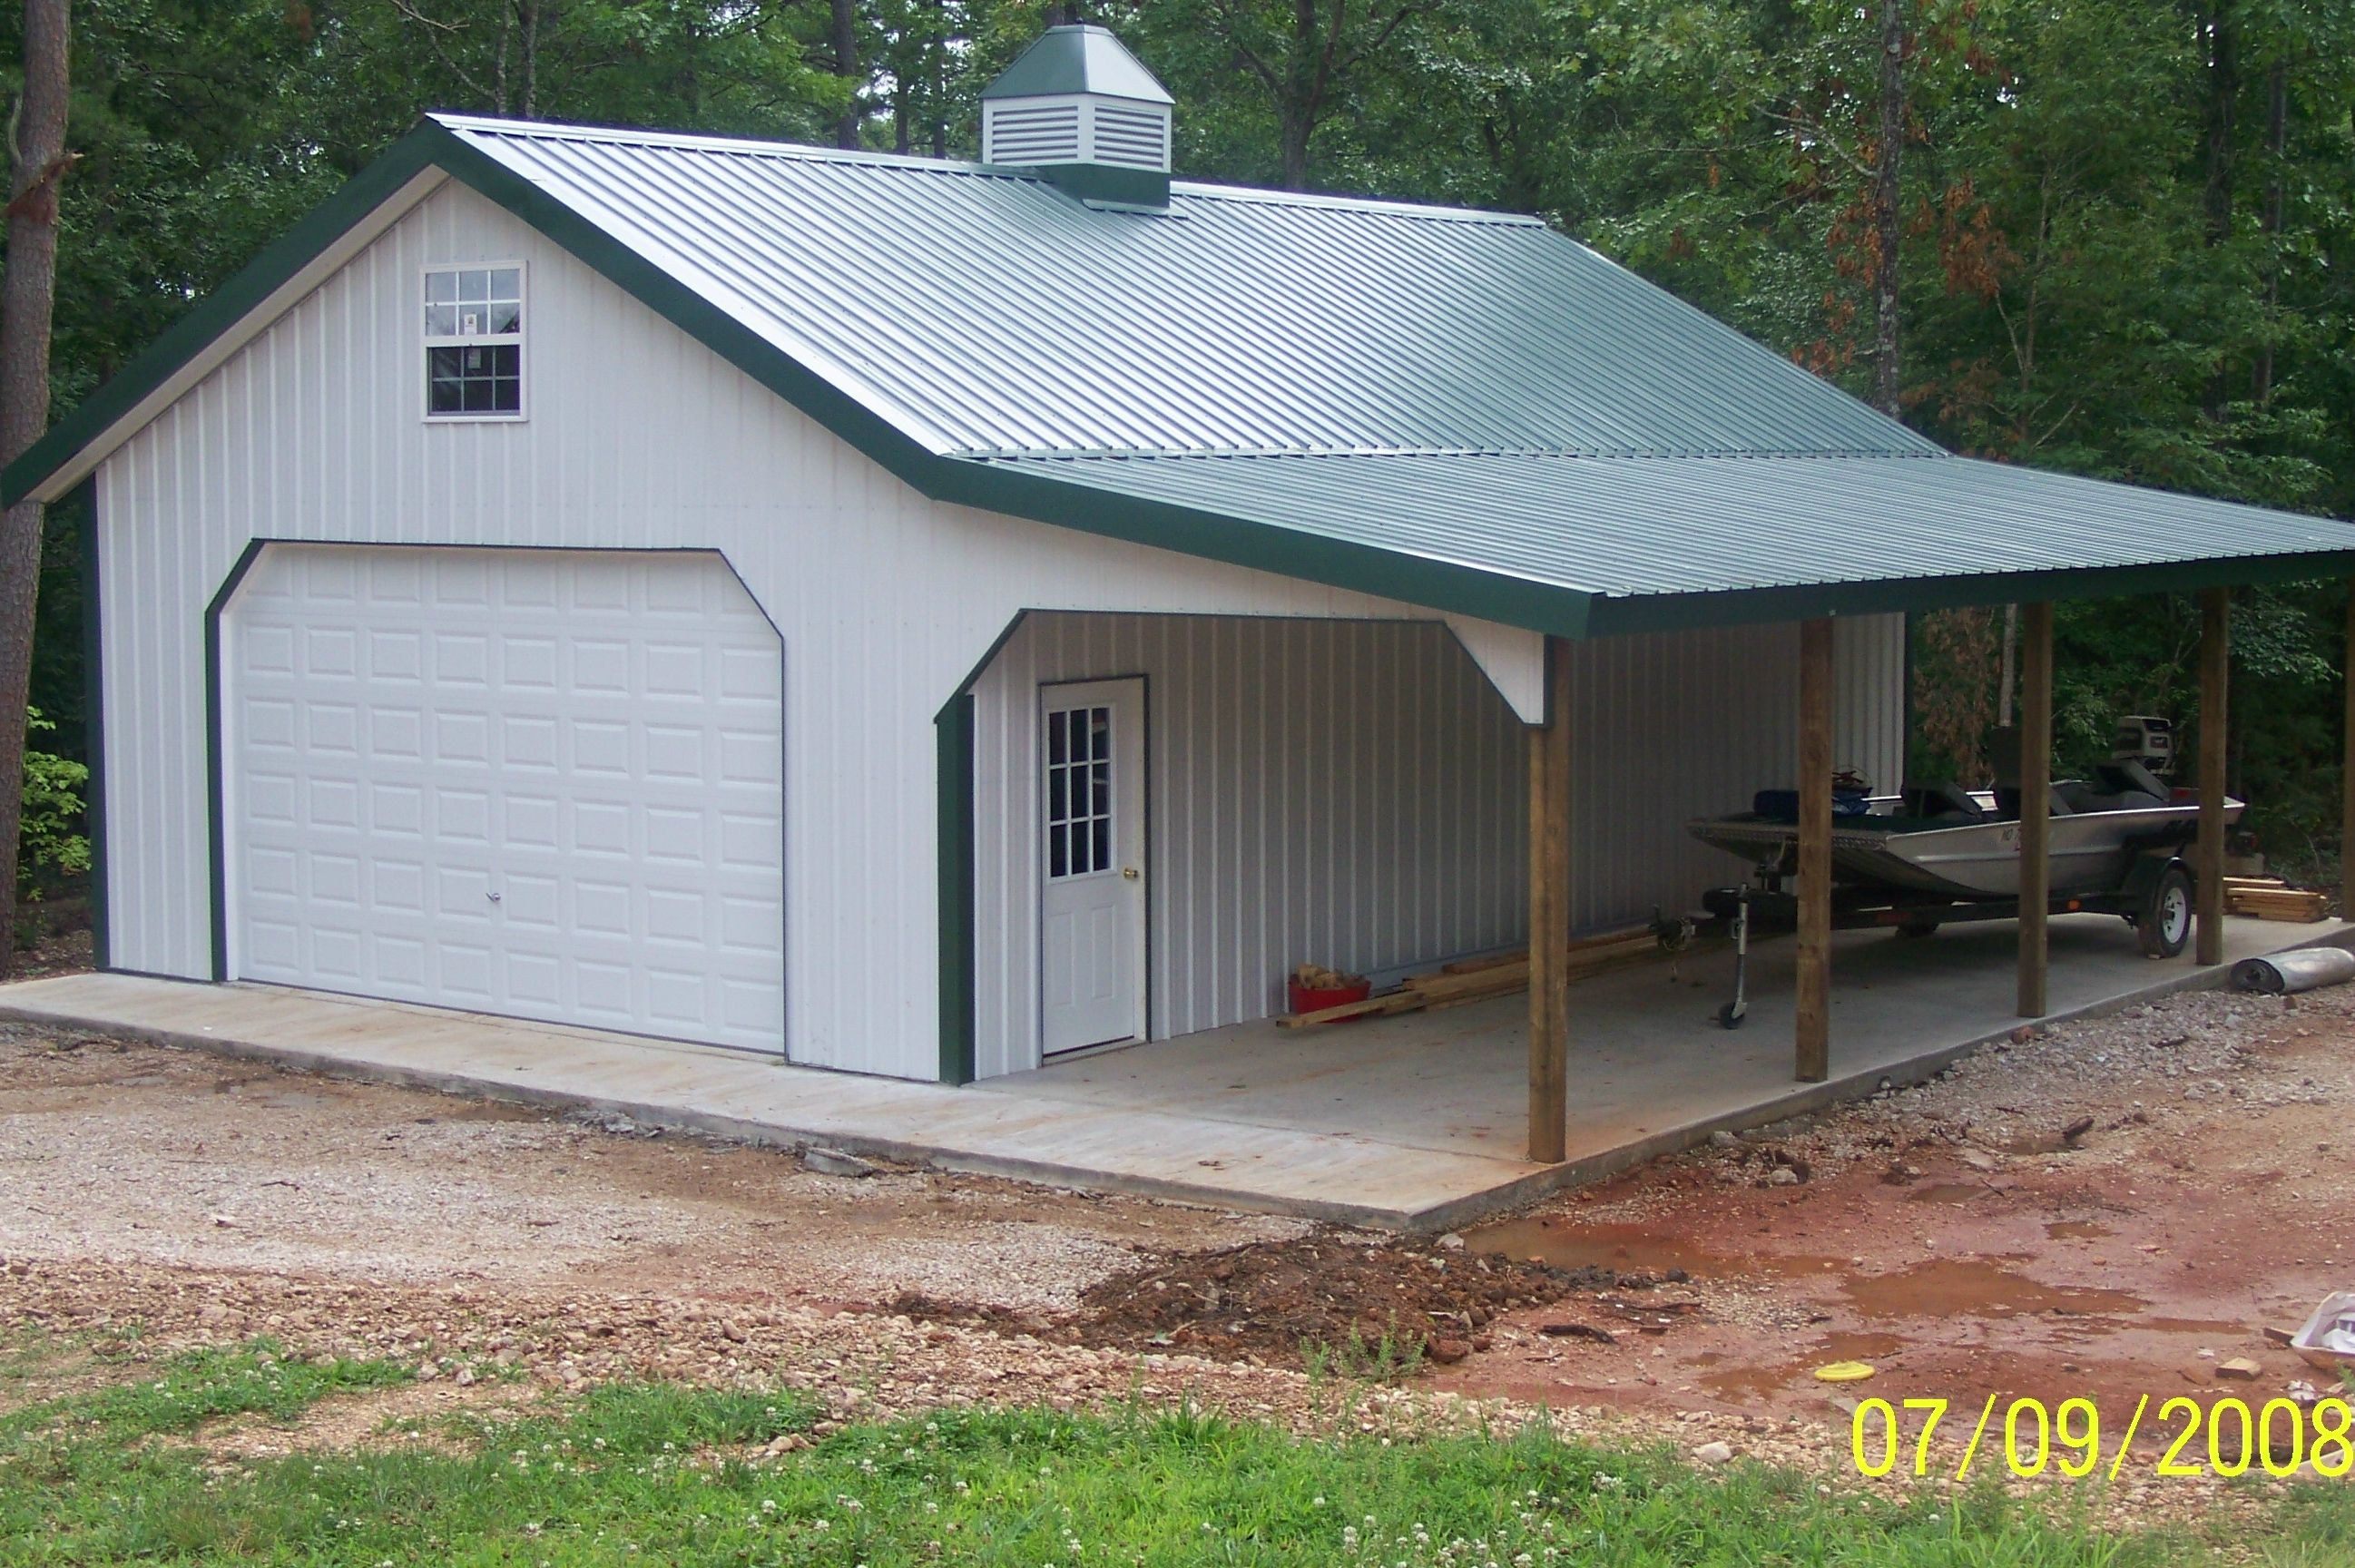 Garage plans 58 garage plans and free diy building How to build a small pole barn